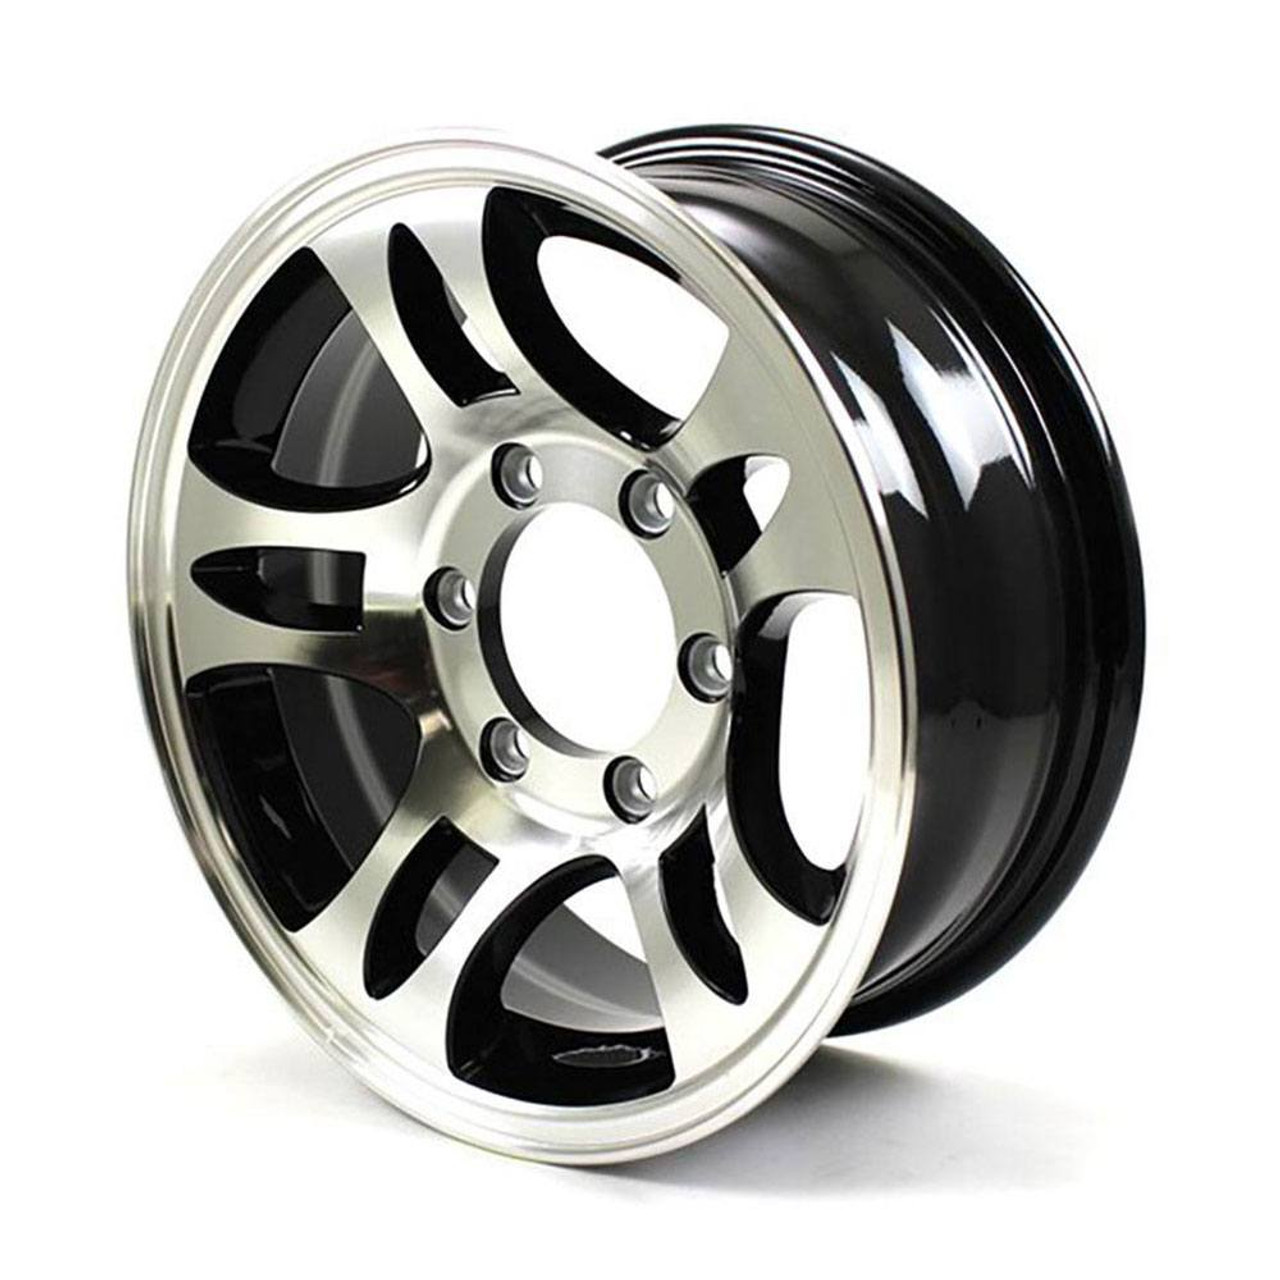 "16X6.5 6-Lug on 5.5"" Aluminum S5 Trailer Wheel - S567655B"